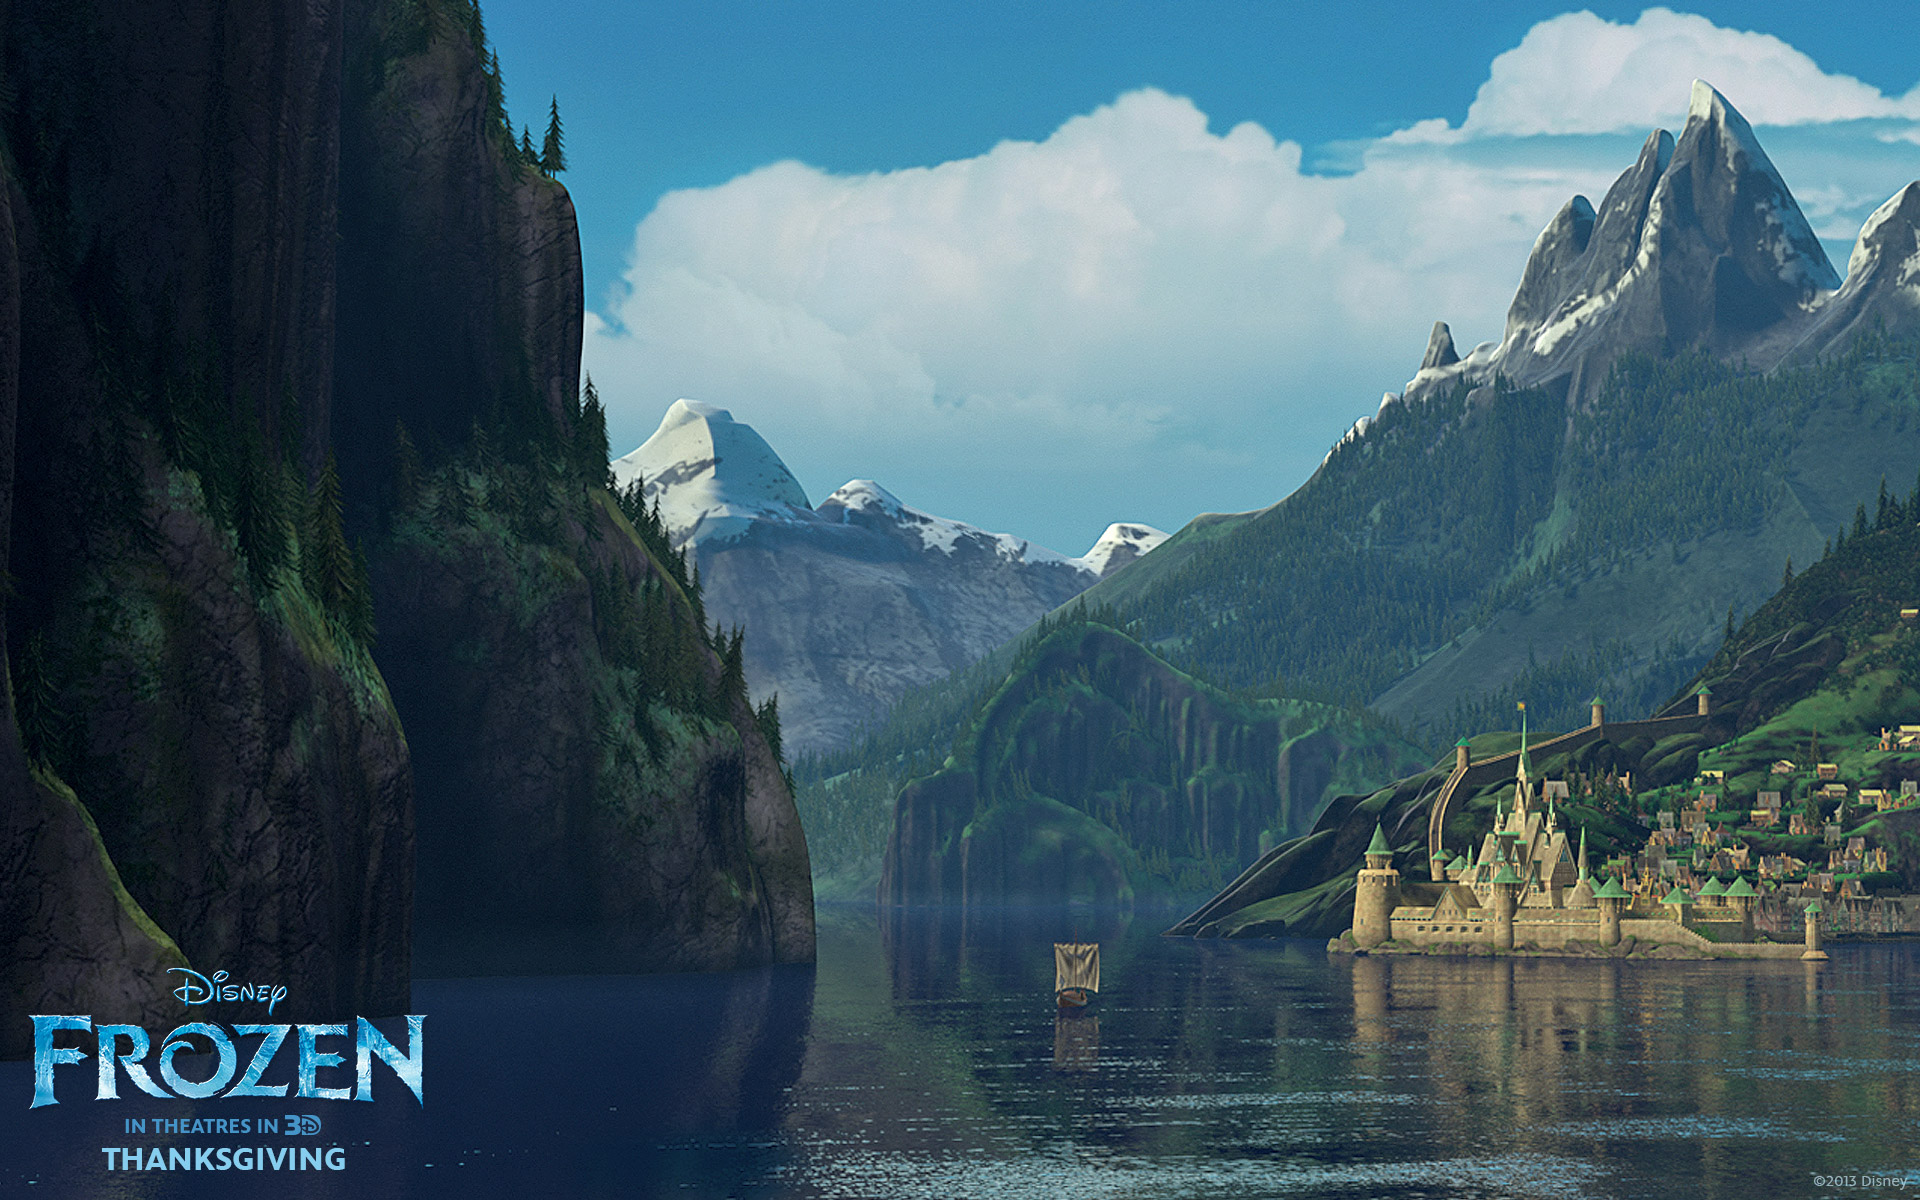 Frozen   Disney movie   the castle HD Wallpaper   Background Image     Wallpapers ID 719475